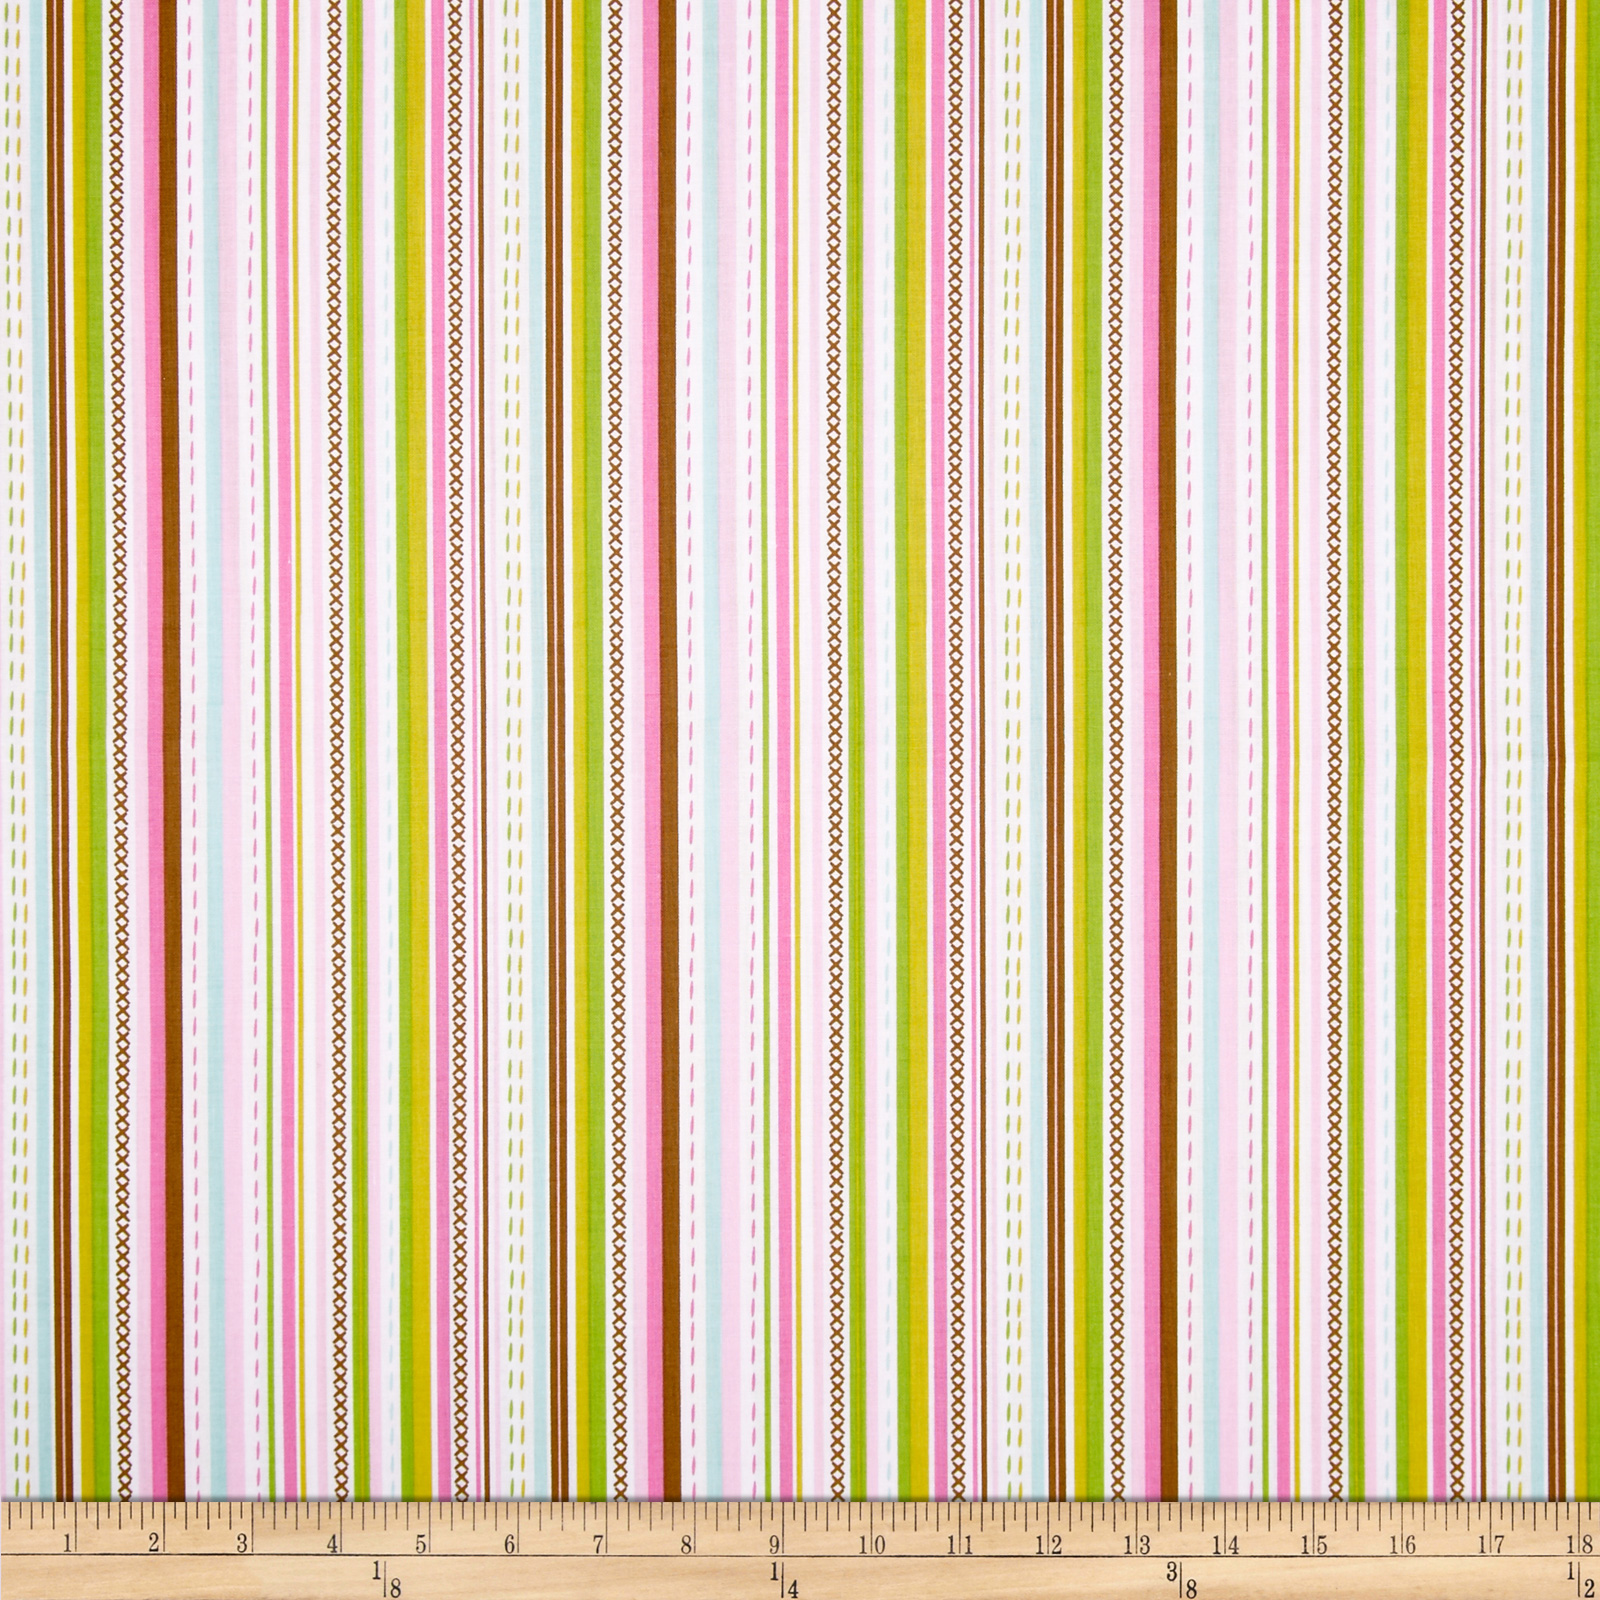 Maisie Stitch Bubble Gum Fabric